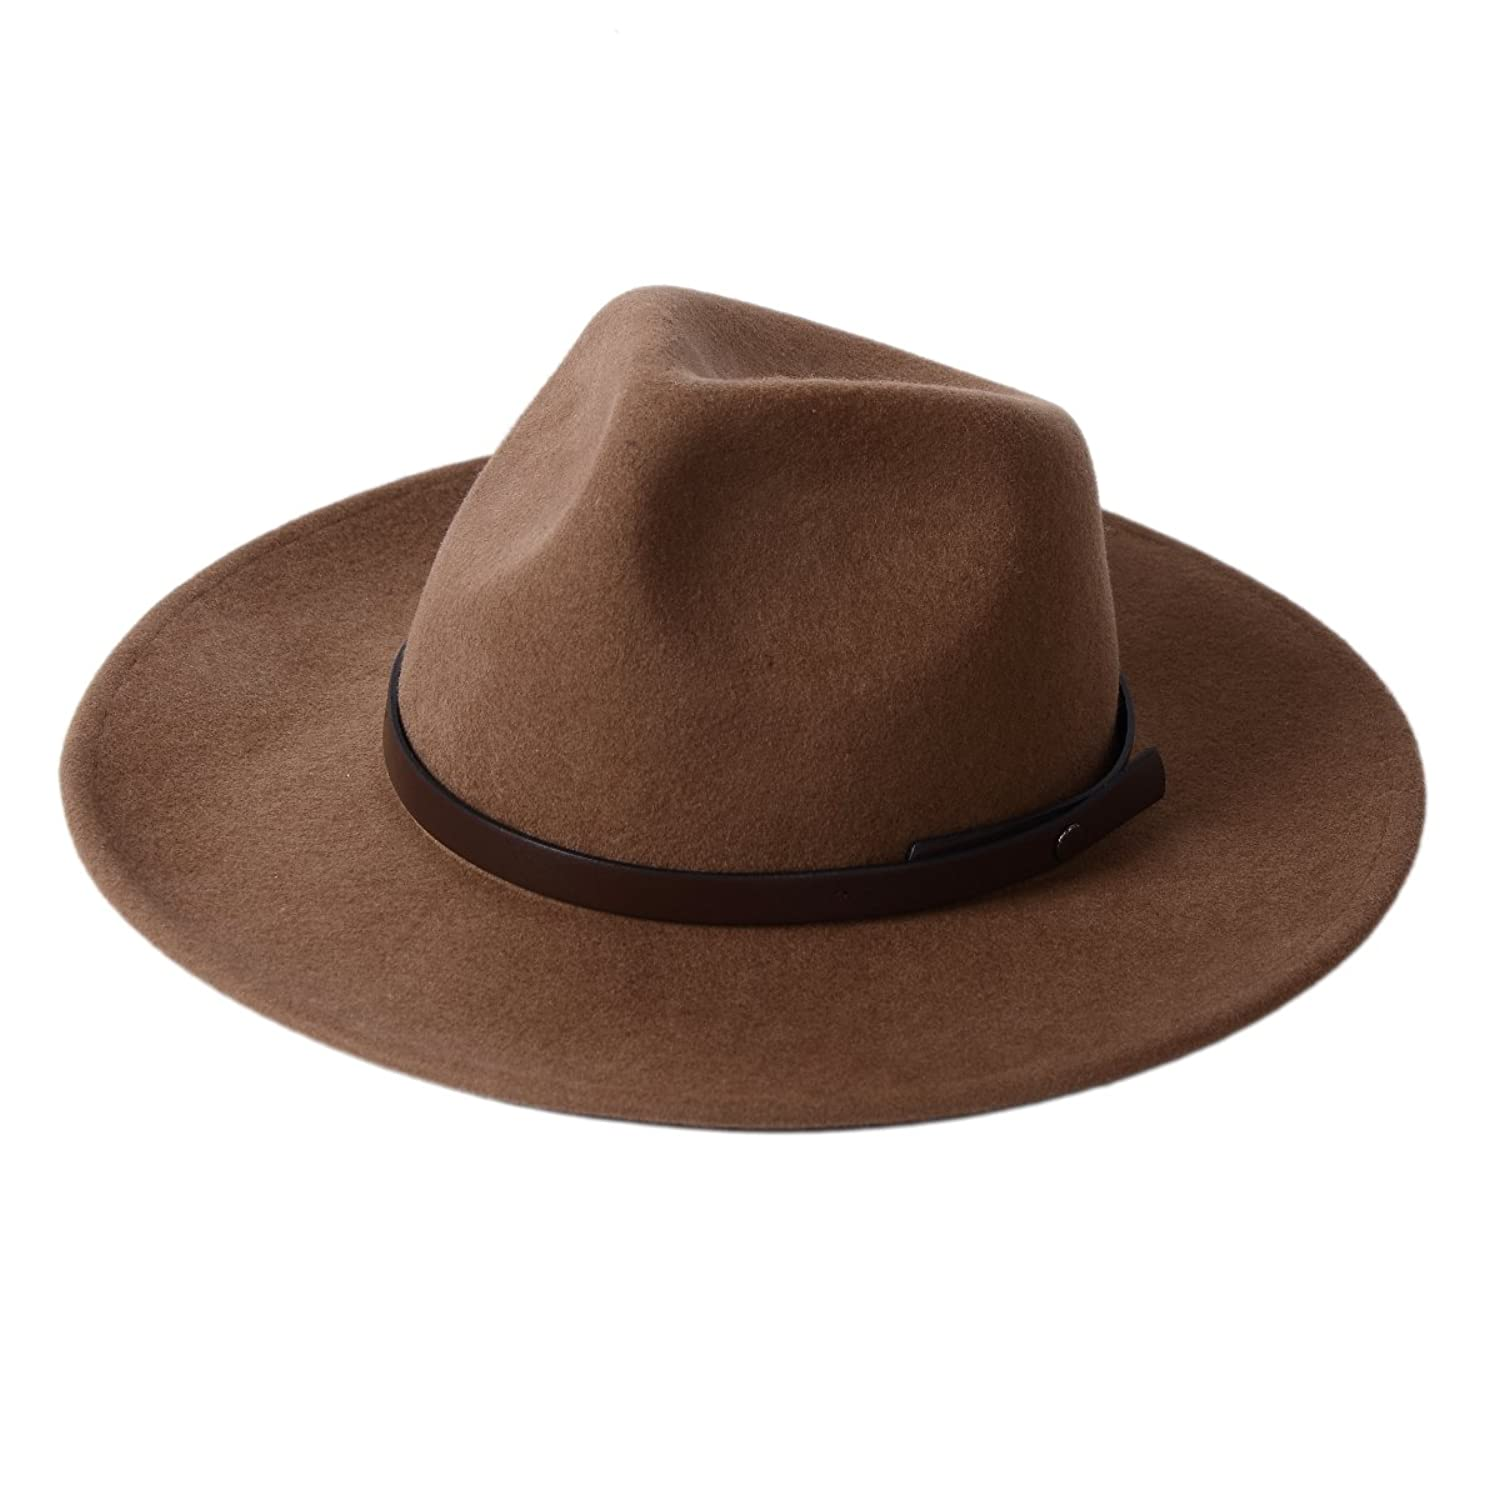 112119d6b8f Western Cowboy Hat-Wool Fedora Felt Hats Men Women Crushable Wide Brim  Trilby